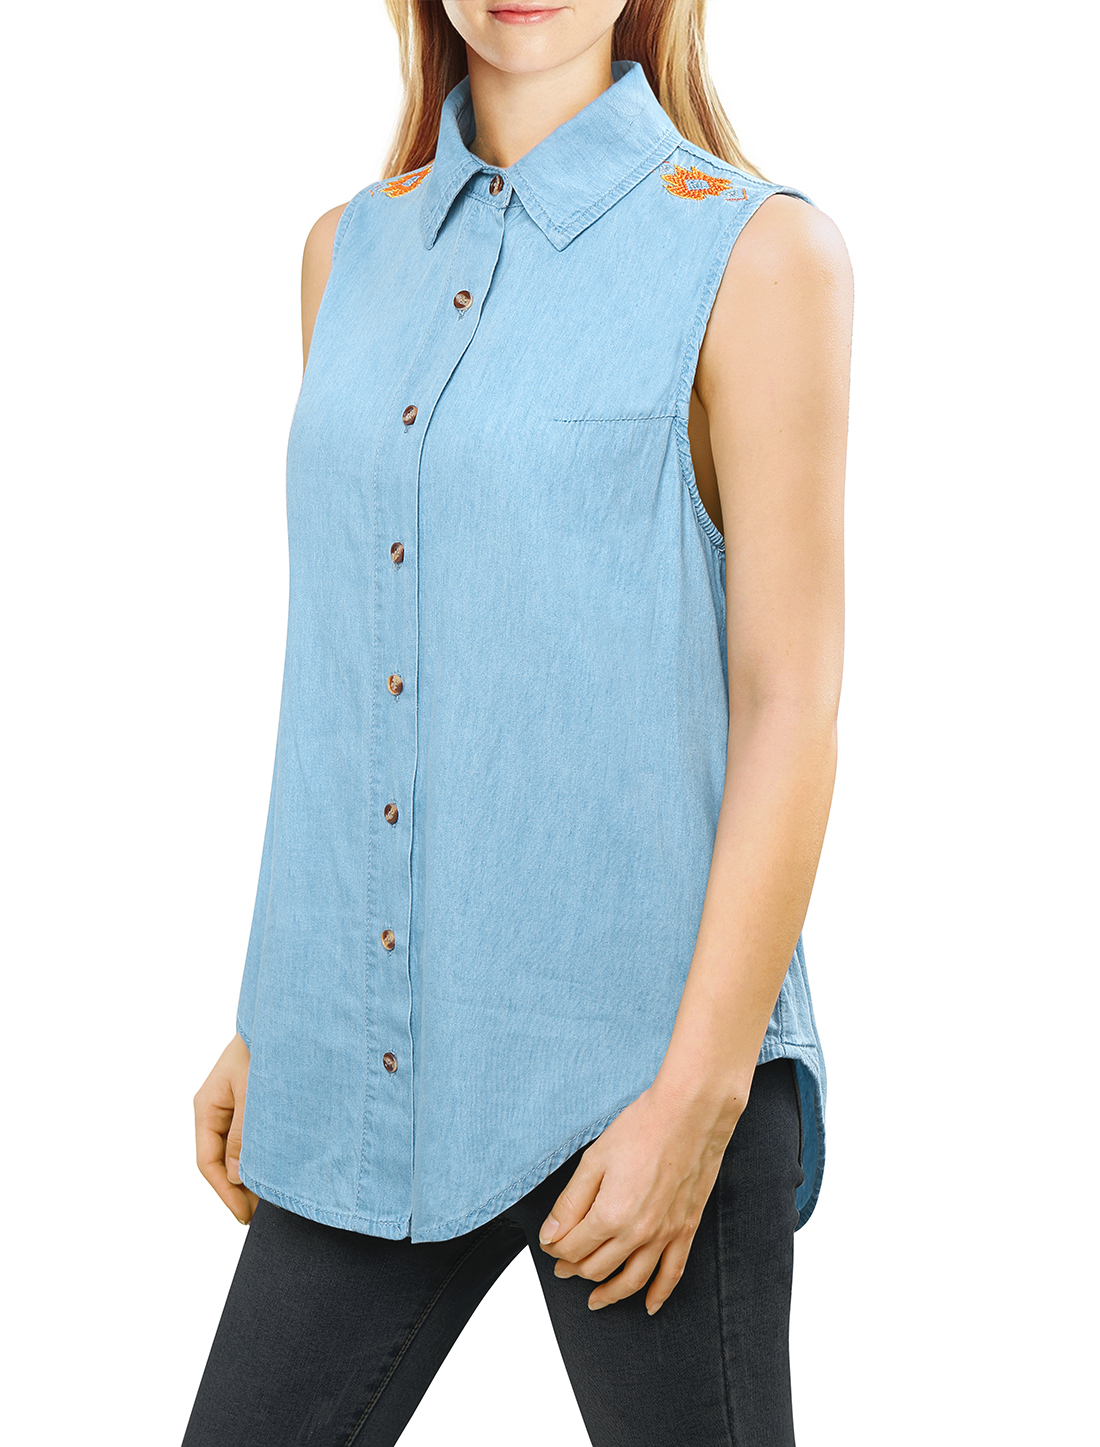 Women Embroidered Sleeveless Denim Shirt w Cut Out Back Blue XS